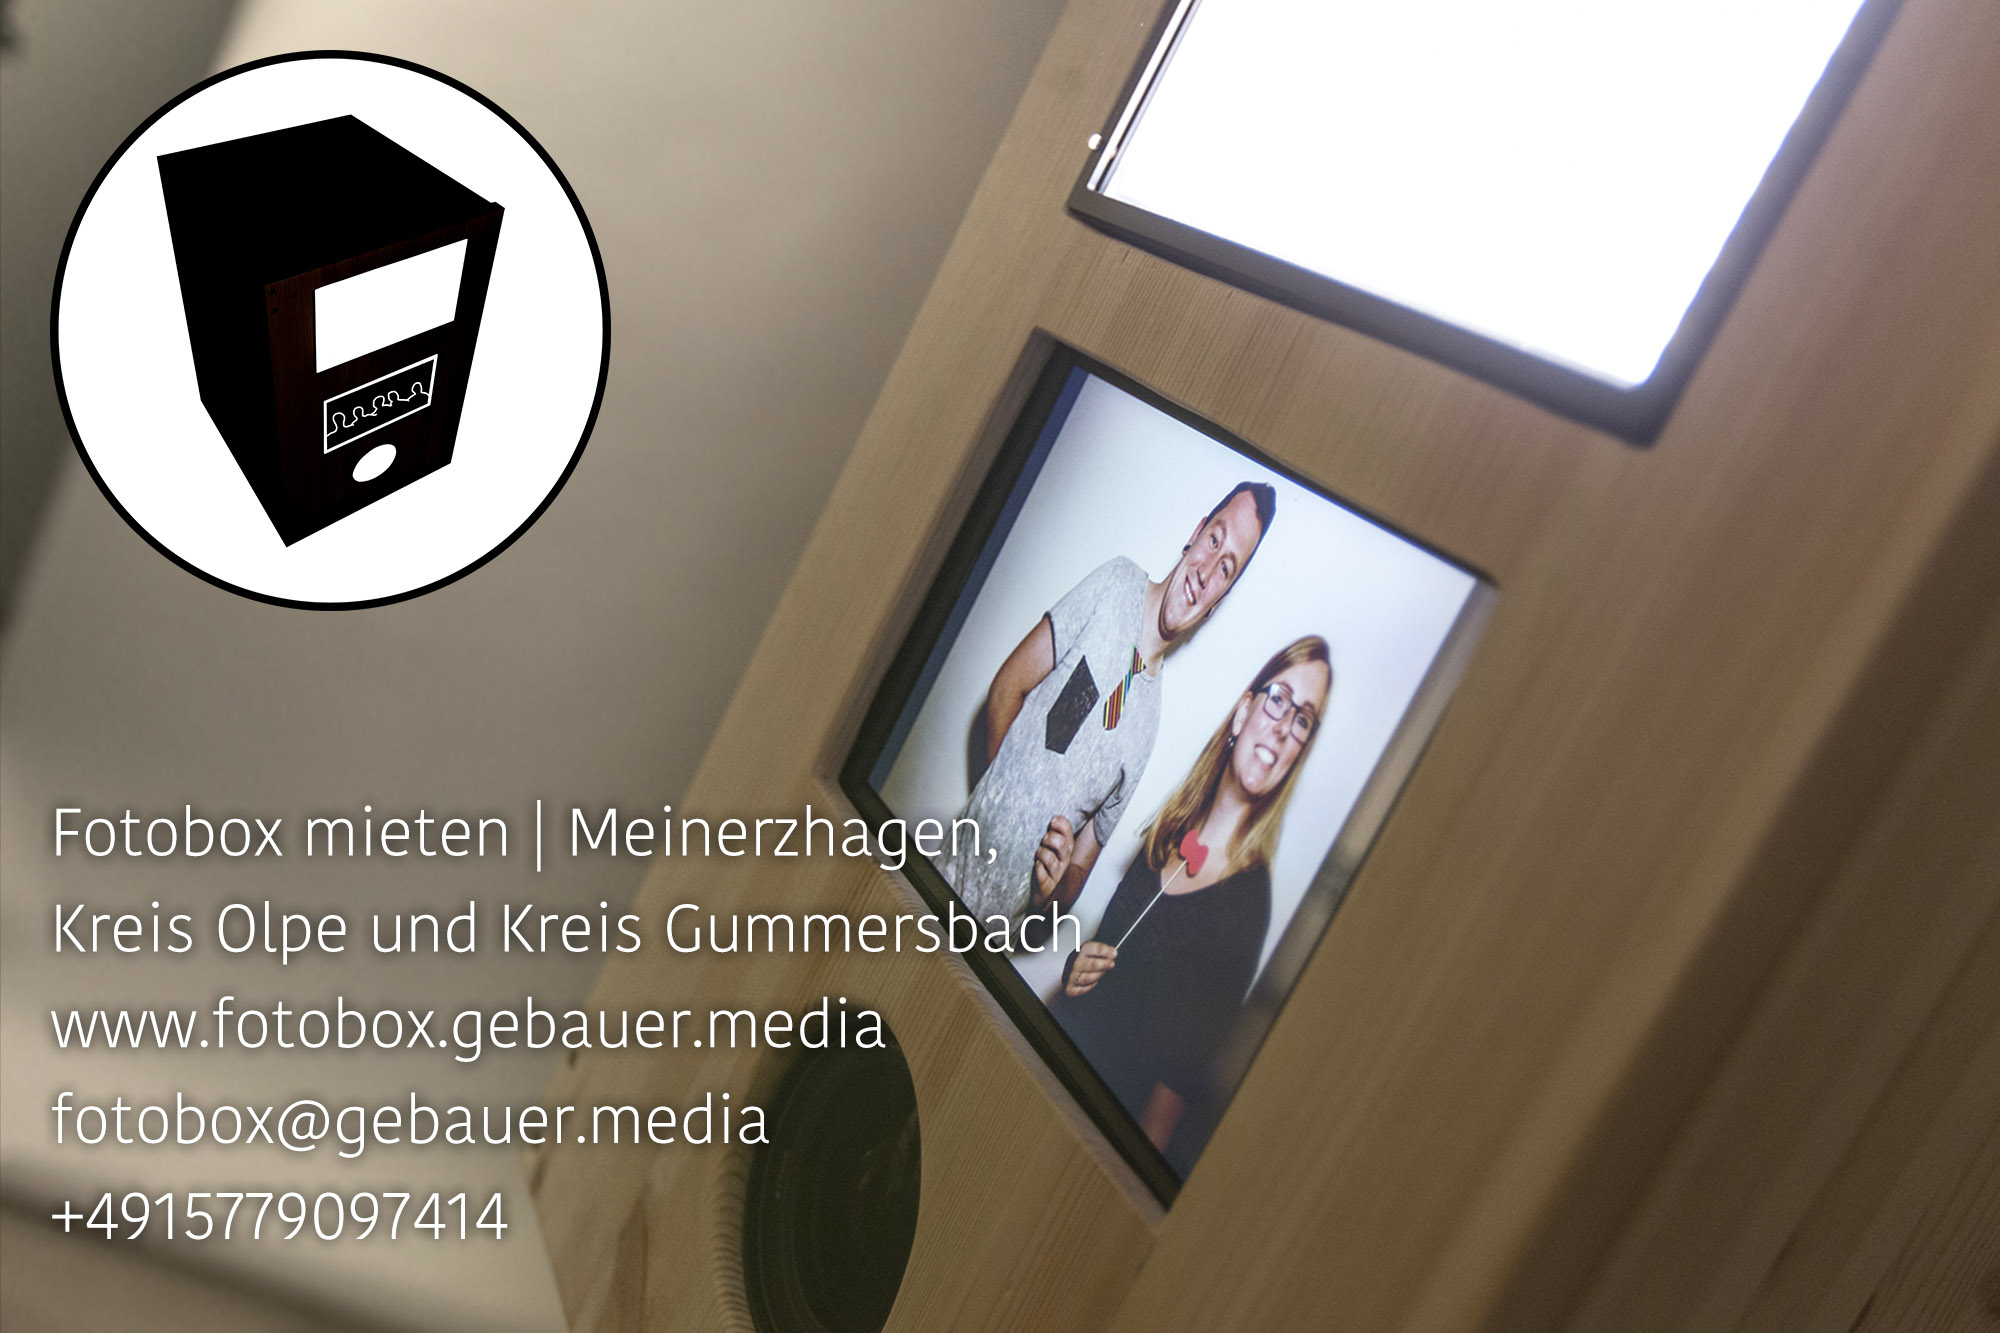 xFotobox_gebauer.media